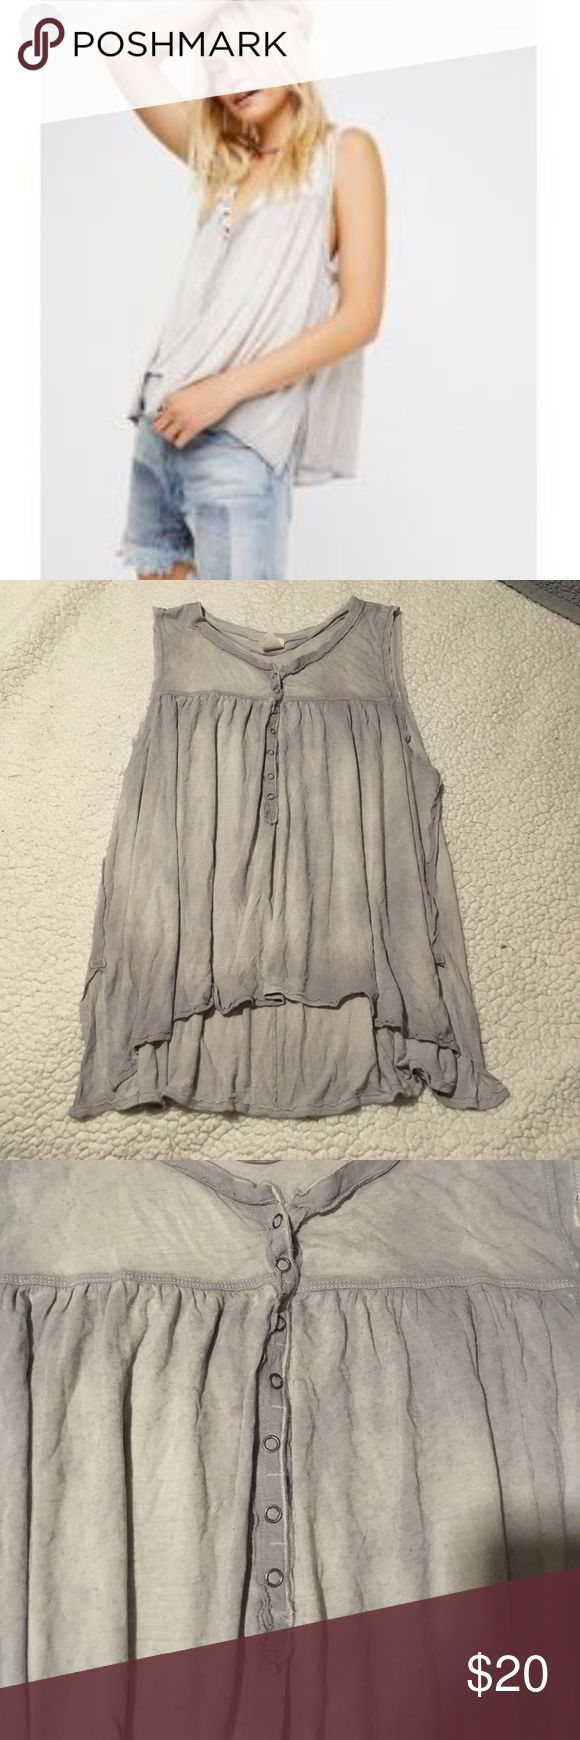 """Free People Hudson Tank Top in Sky Gray Size Small Adorable Free People Hudson Tank Top size small in Sky Gray. One tiny pin hole in the back (pictured) but totally not noticeable while wearing and priced accordingly for this sold out Top. Fastened with diminutive buttons, this long and slouchy tank has a special wash treatment and long and loose silhouette that can be draped and tucked just as you like. 21"""" front length; 25"""" back length Front snap closure Sleeveless 70% rayon, 30% linen…"""